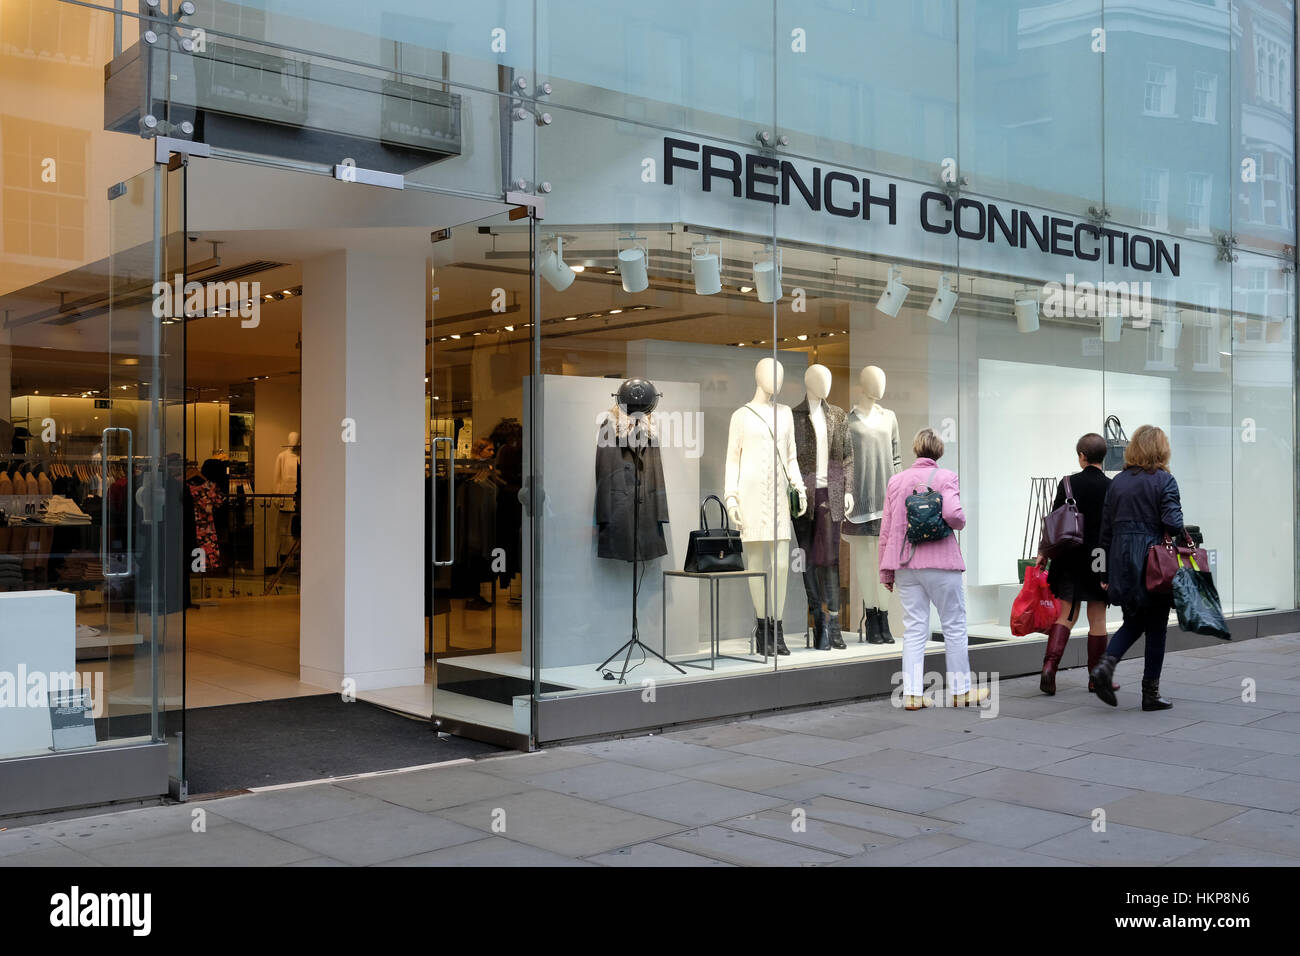 42e642b52ff FRENCH CONNECTION store in Covent Garden, London, UK Stock Photo ...